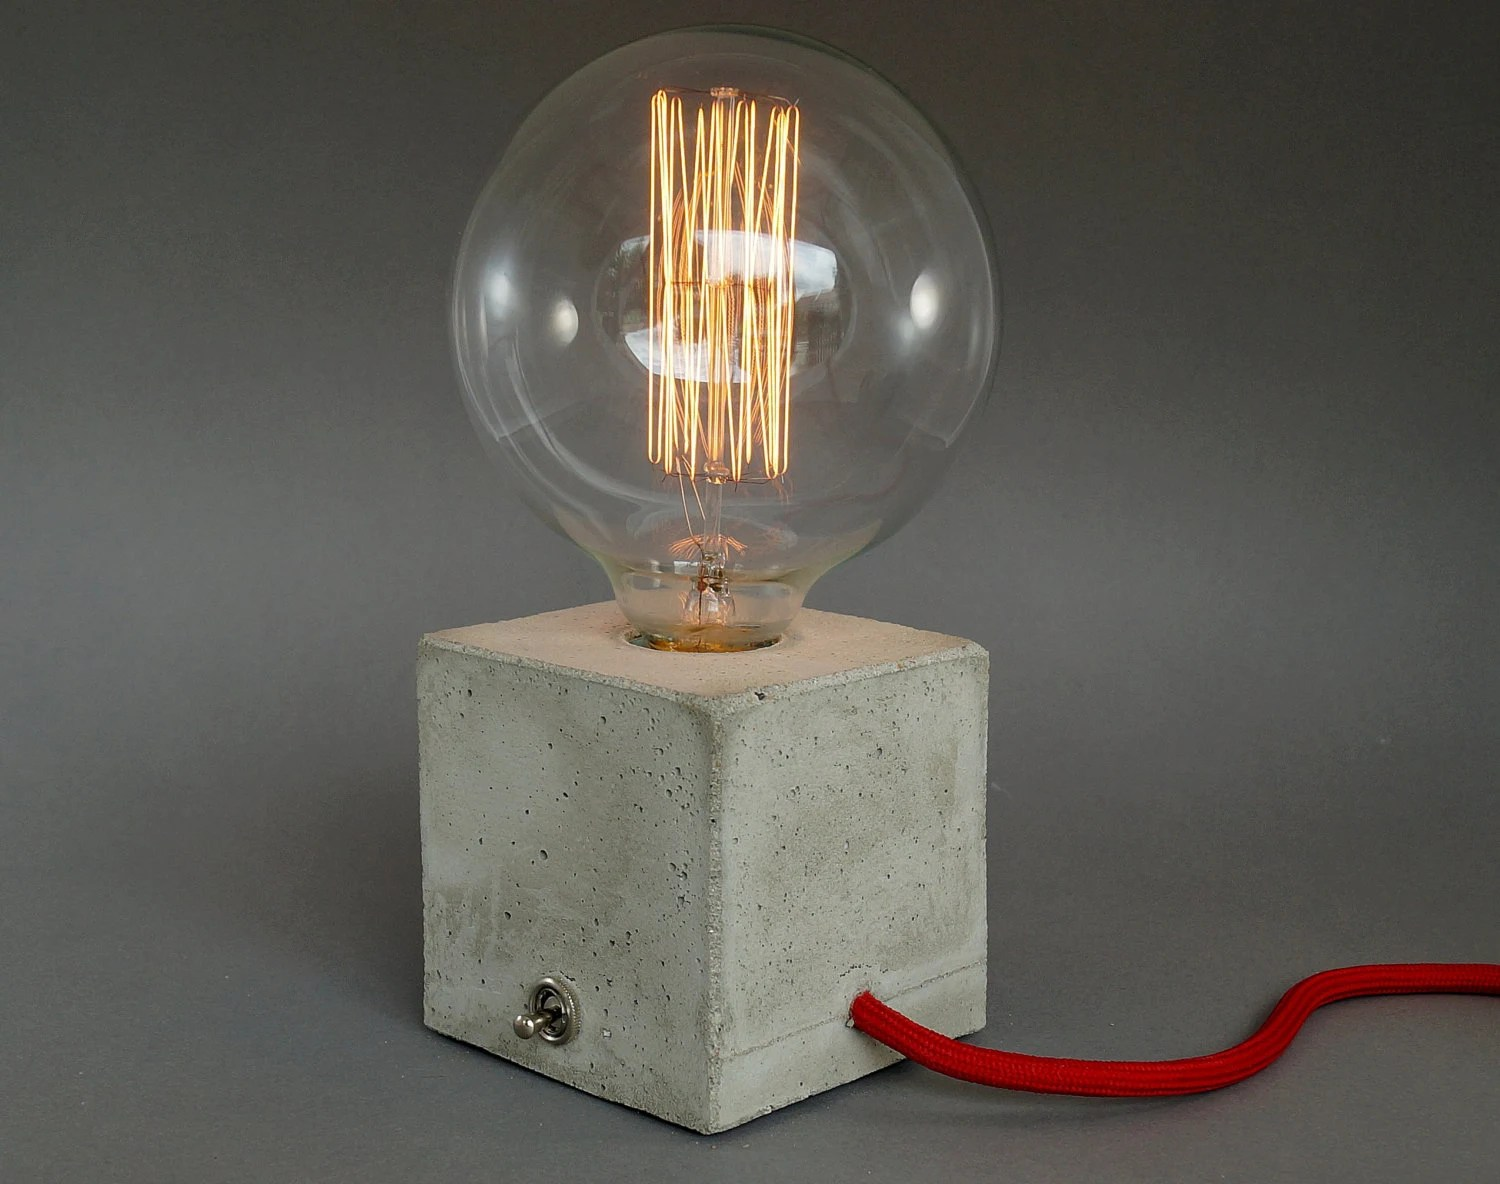 Tischlampe Beton Concrete Lamp Table Lamp Bedside Lamp Cubo